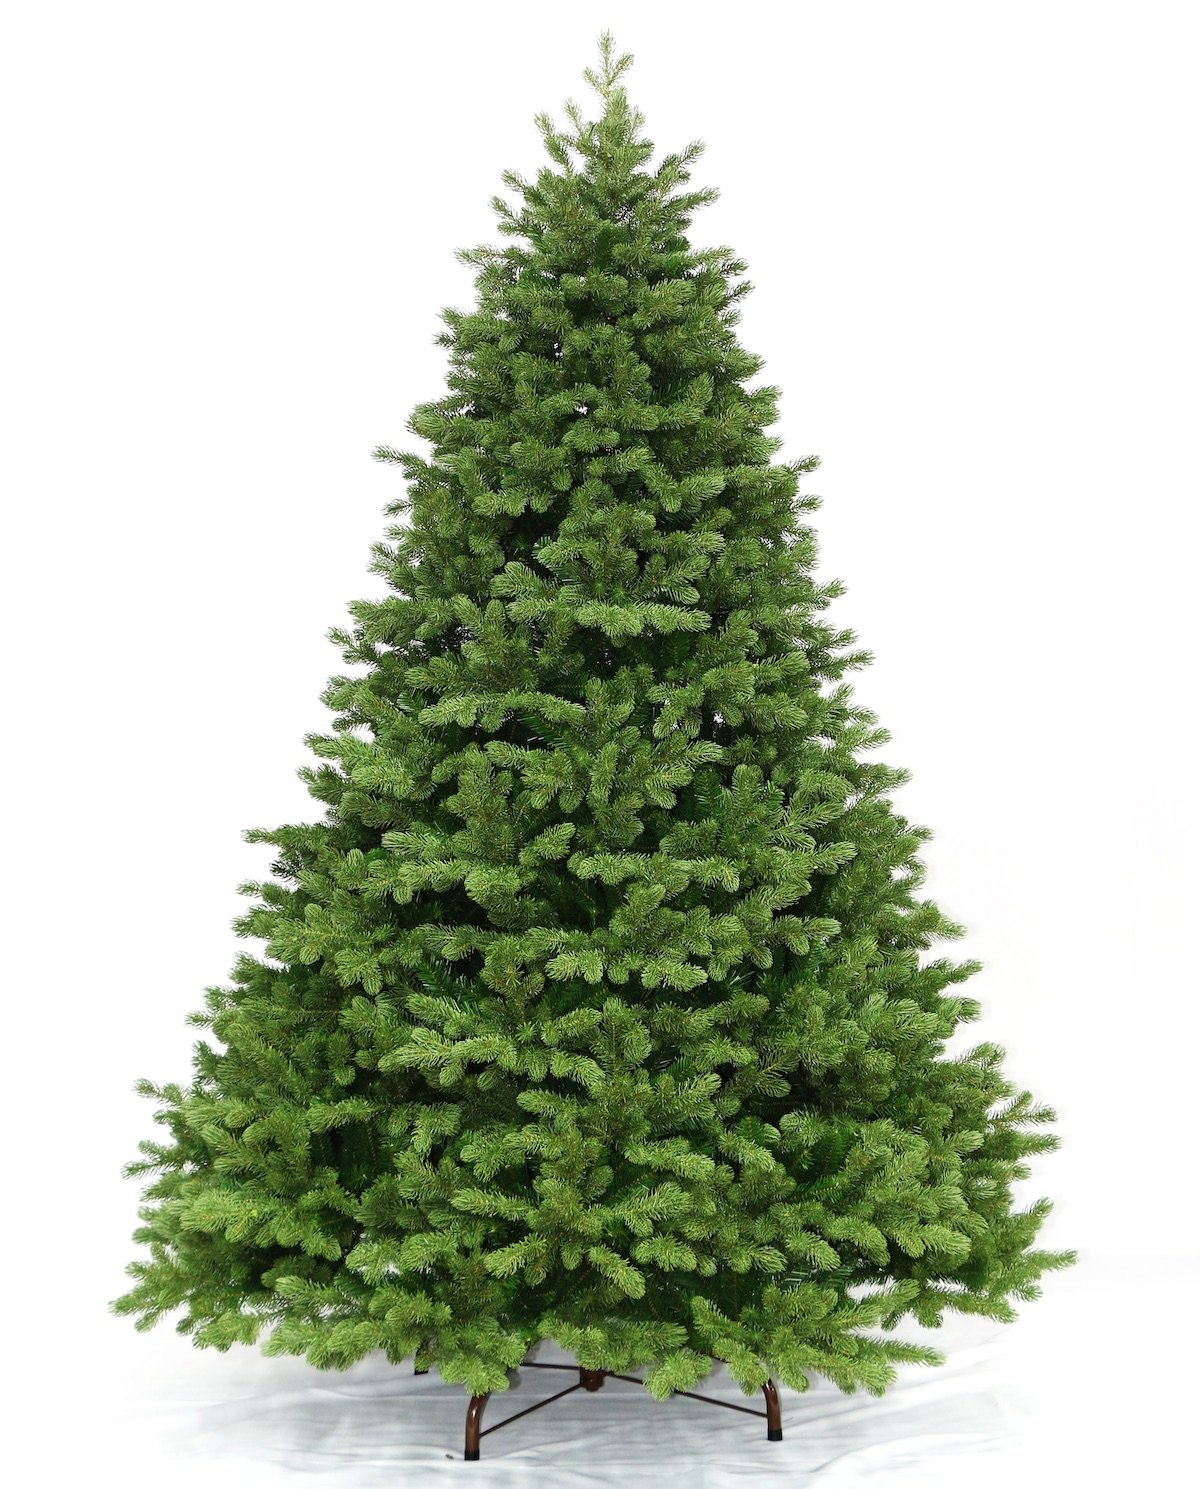 Cypress_Spruce_Artificial_Christmas_Tree_Unlit_a24cd360-b405-4a75-9207-11fe93749c81_2000x.jpg